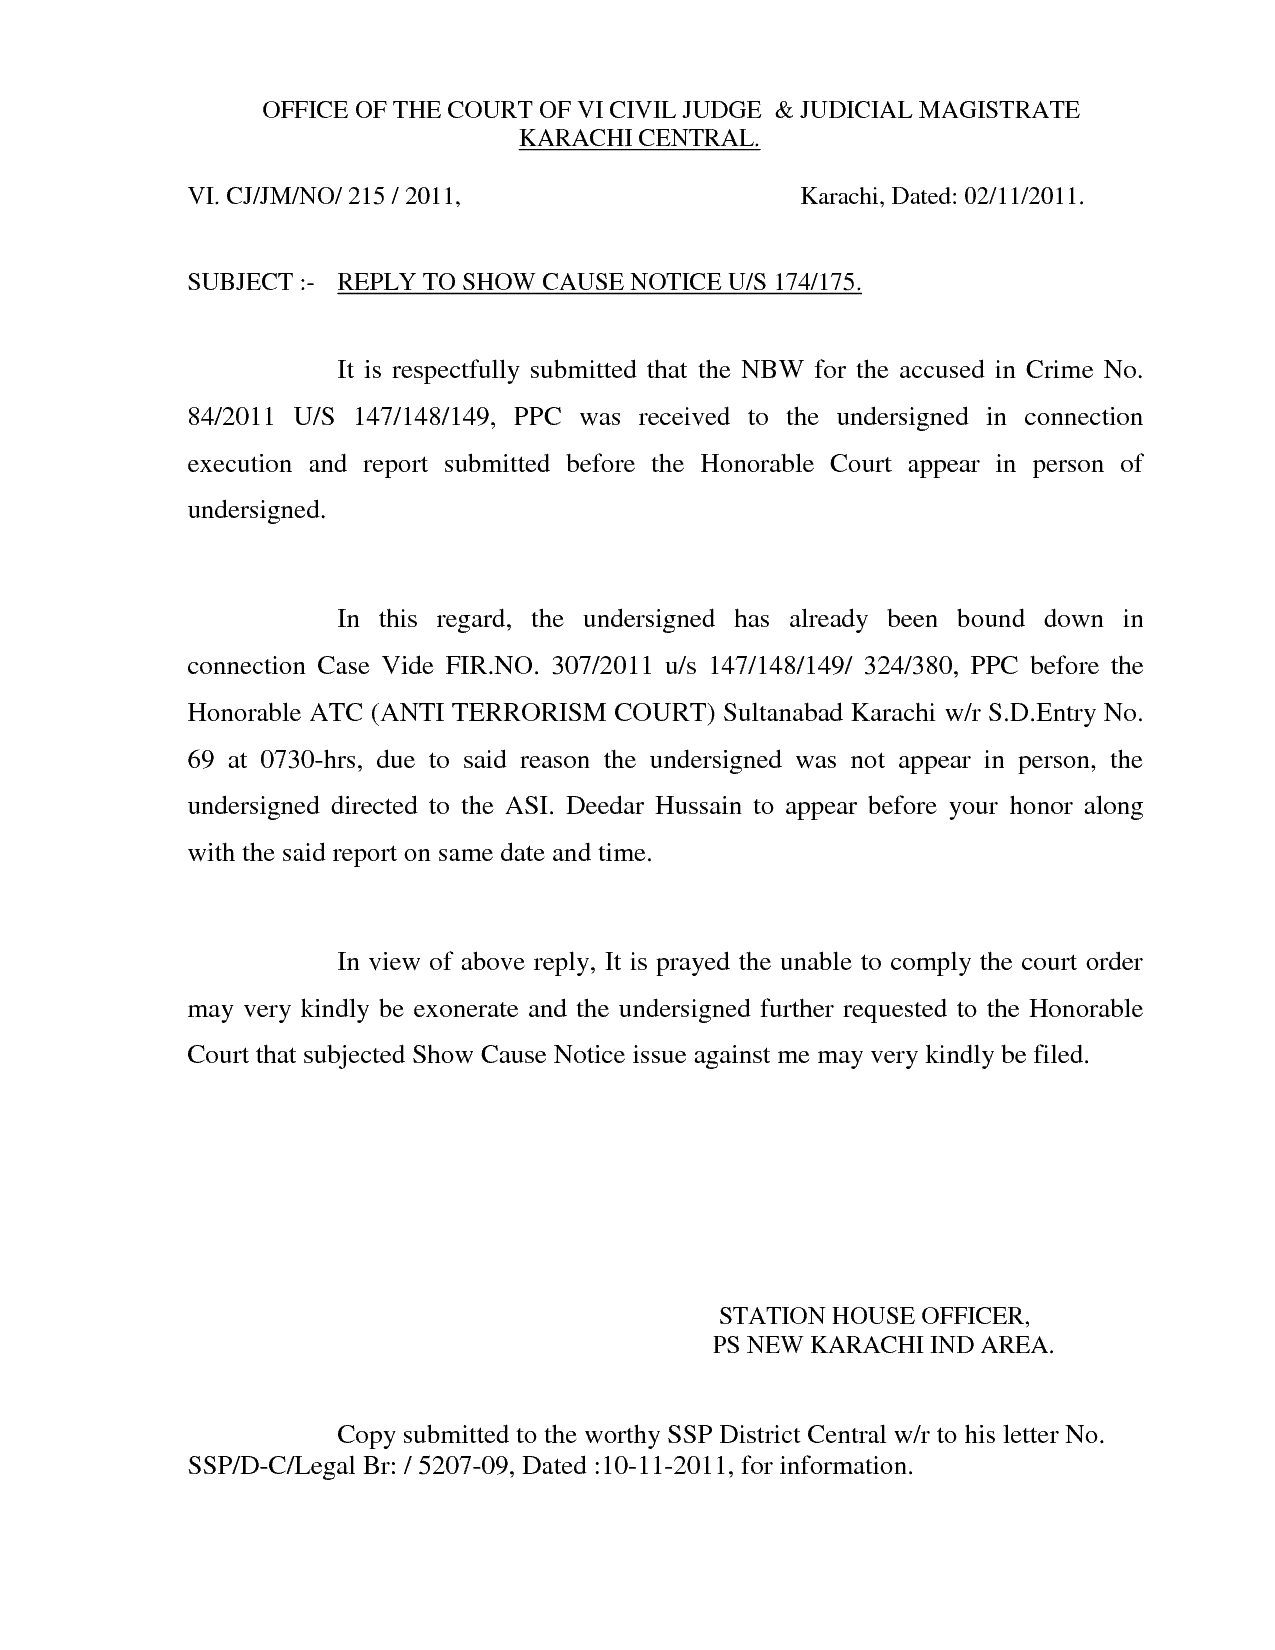 show cause letter format Charge-sheet/show cause notice a charge-sheet is a document which sets out the allegations of misconduct, misbehavior, indiscipline, lack of interest, negligence etc on the part of the employee which he should not have committed in contravention of existing rules of the organization.